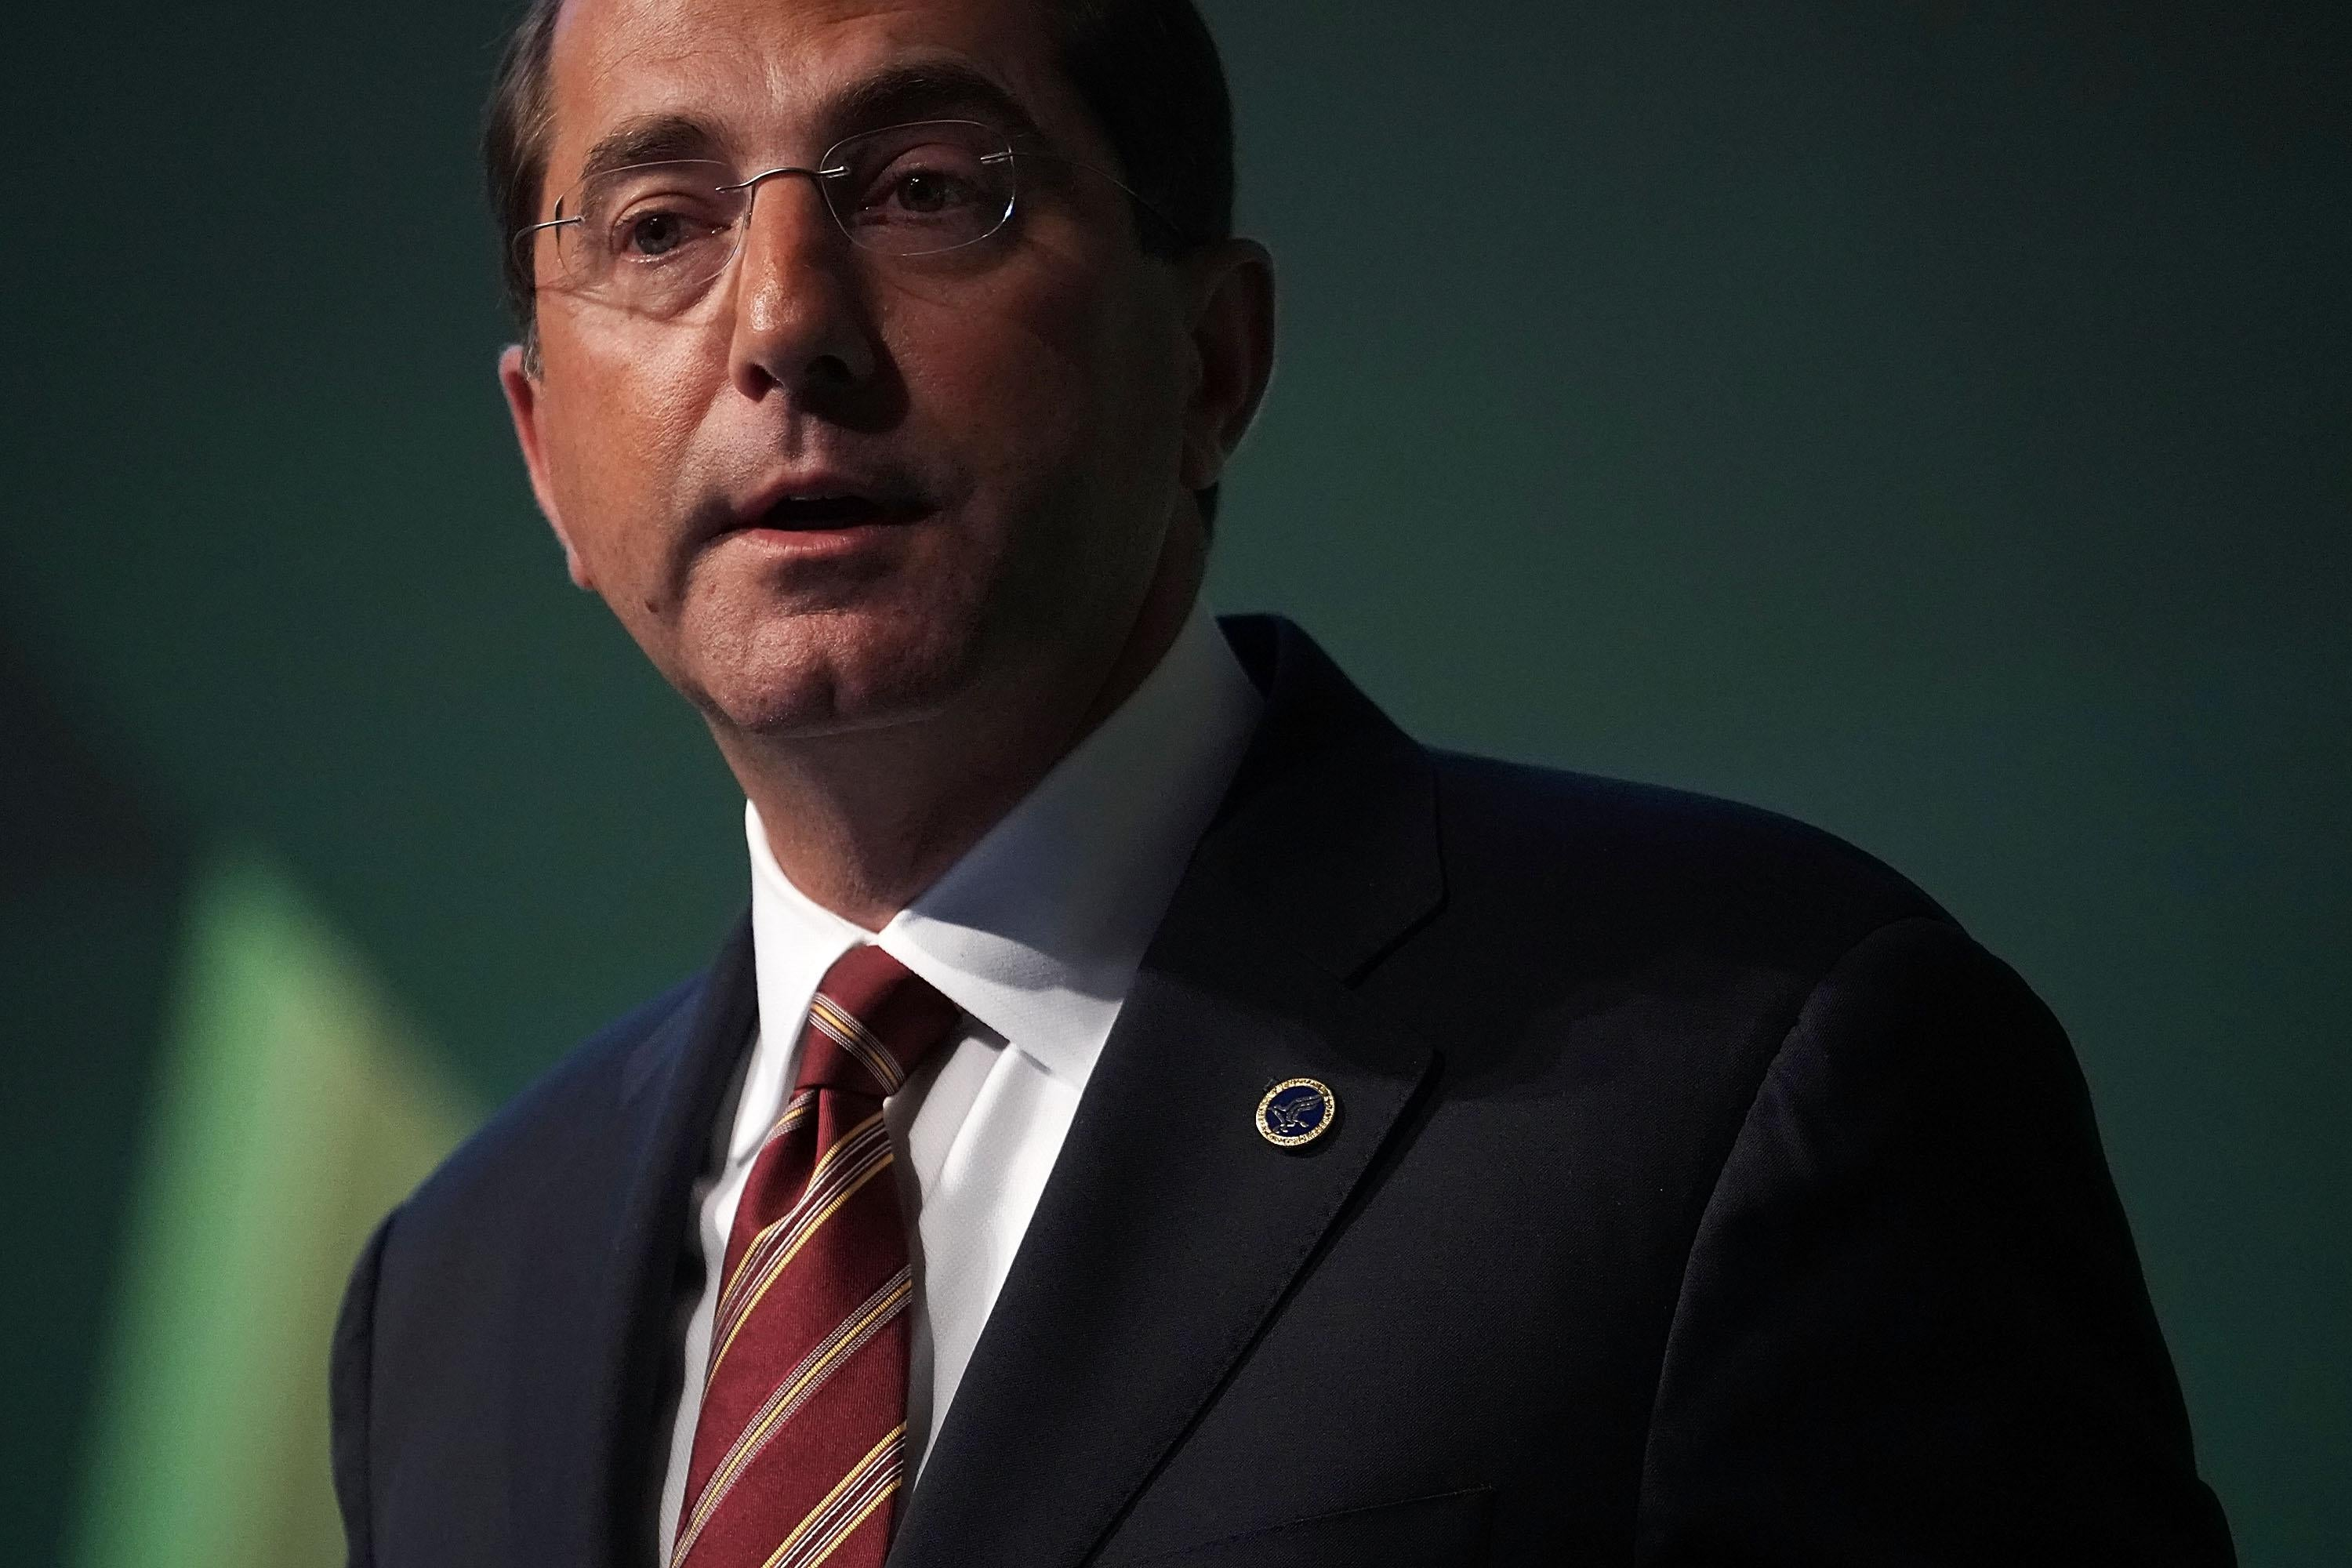 U.S. Secretary of Health and Human Services Alex Azar speaks on prescription drugs for the market during the 2018 National Academy of Medicine Annual Meeting October 15.